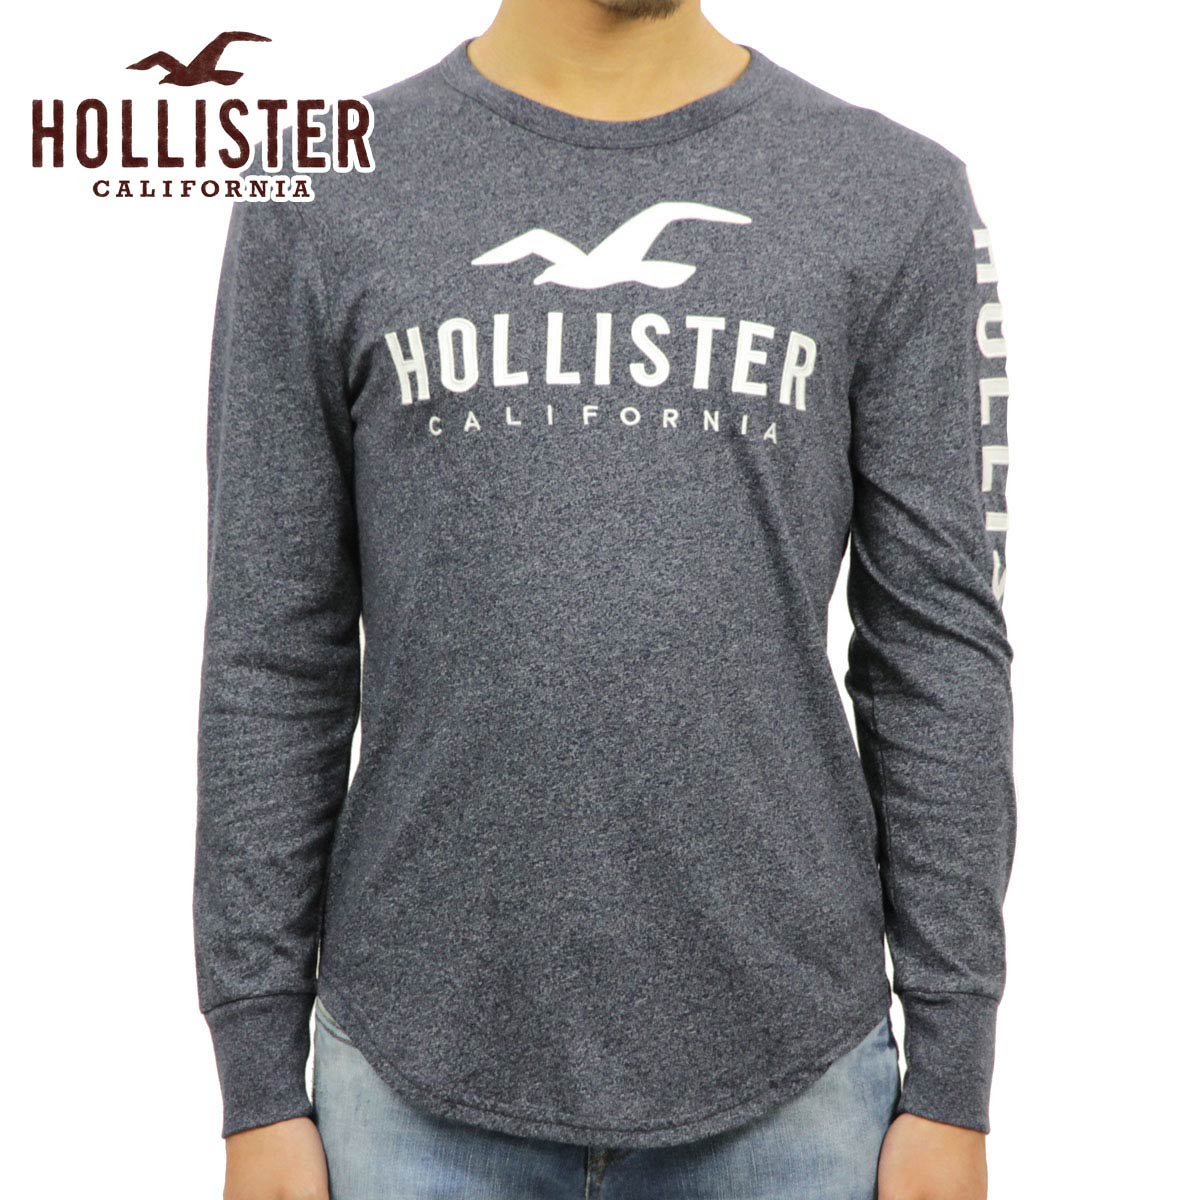 Hori star T shirt men's regular article HOLLISTER long sleeves T shirt Long Sleeve Logo Graphic Tee 323 248 0111 202